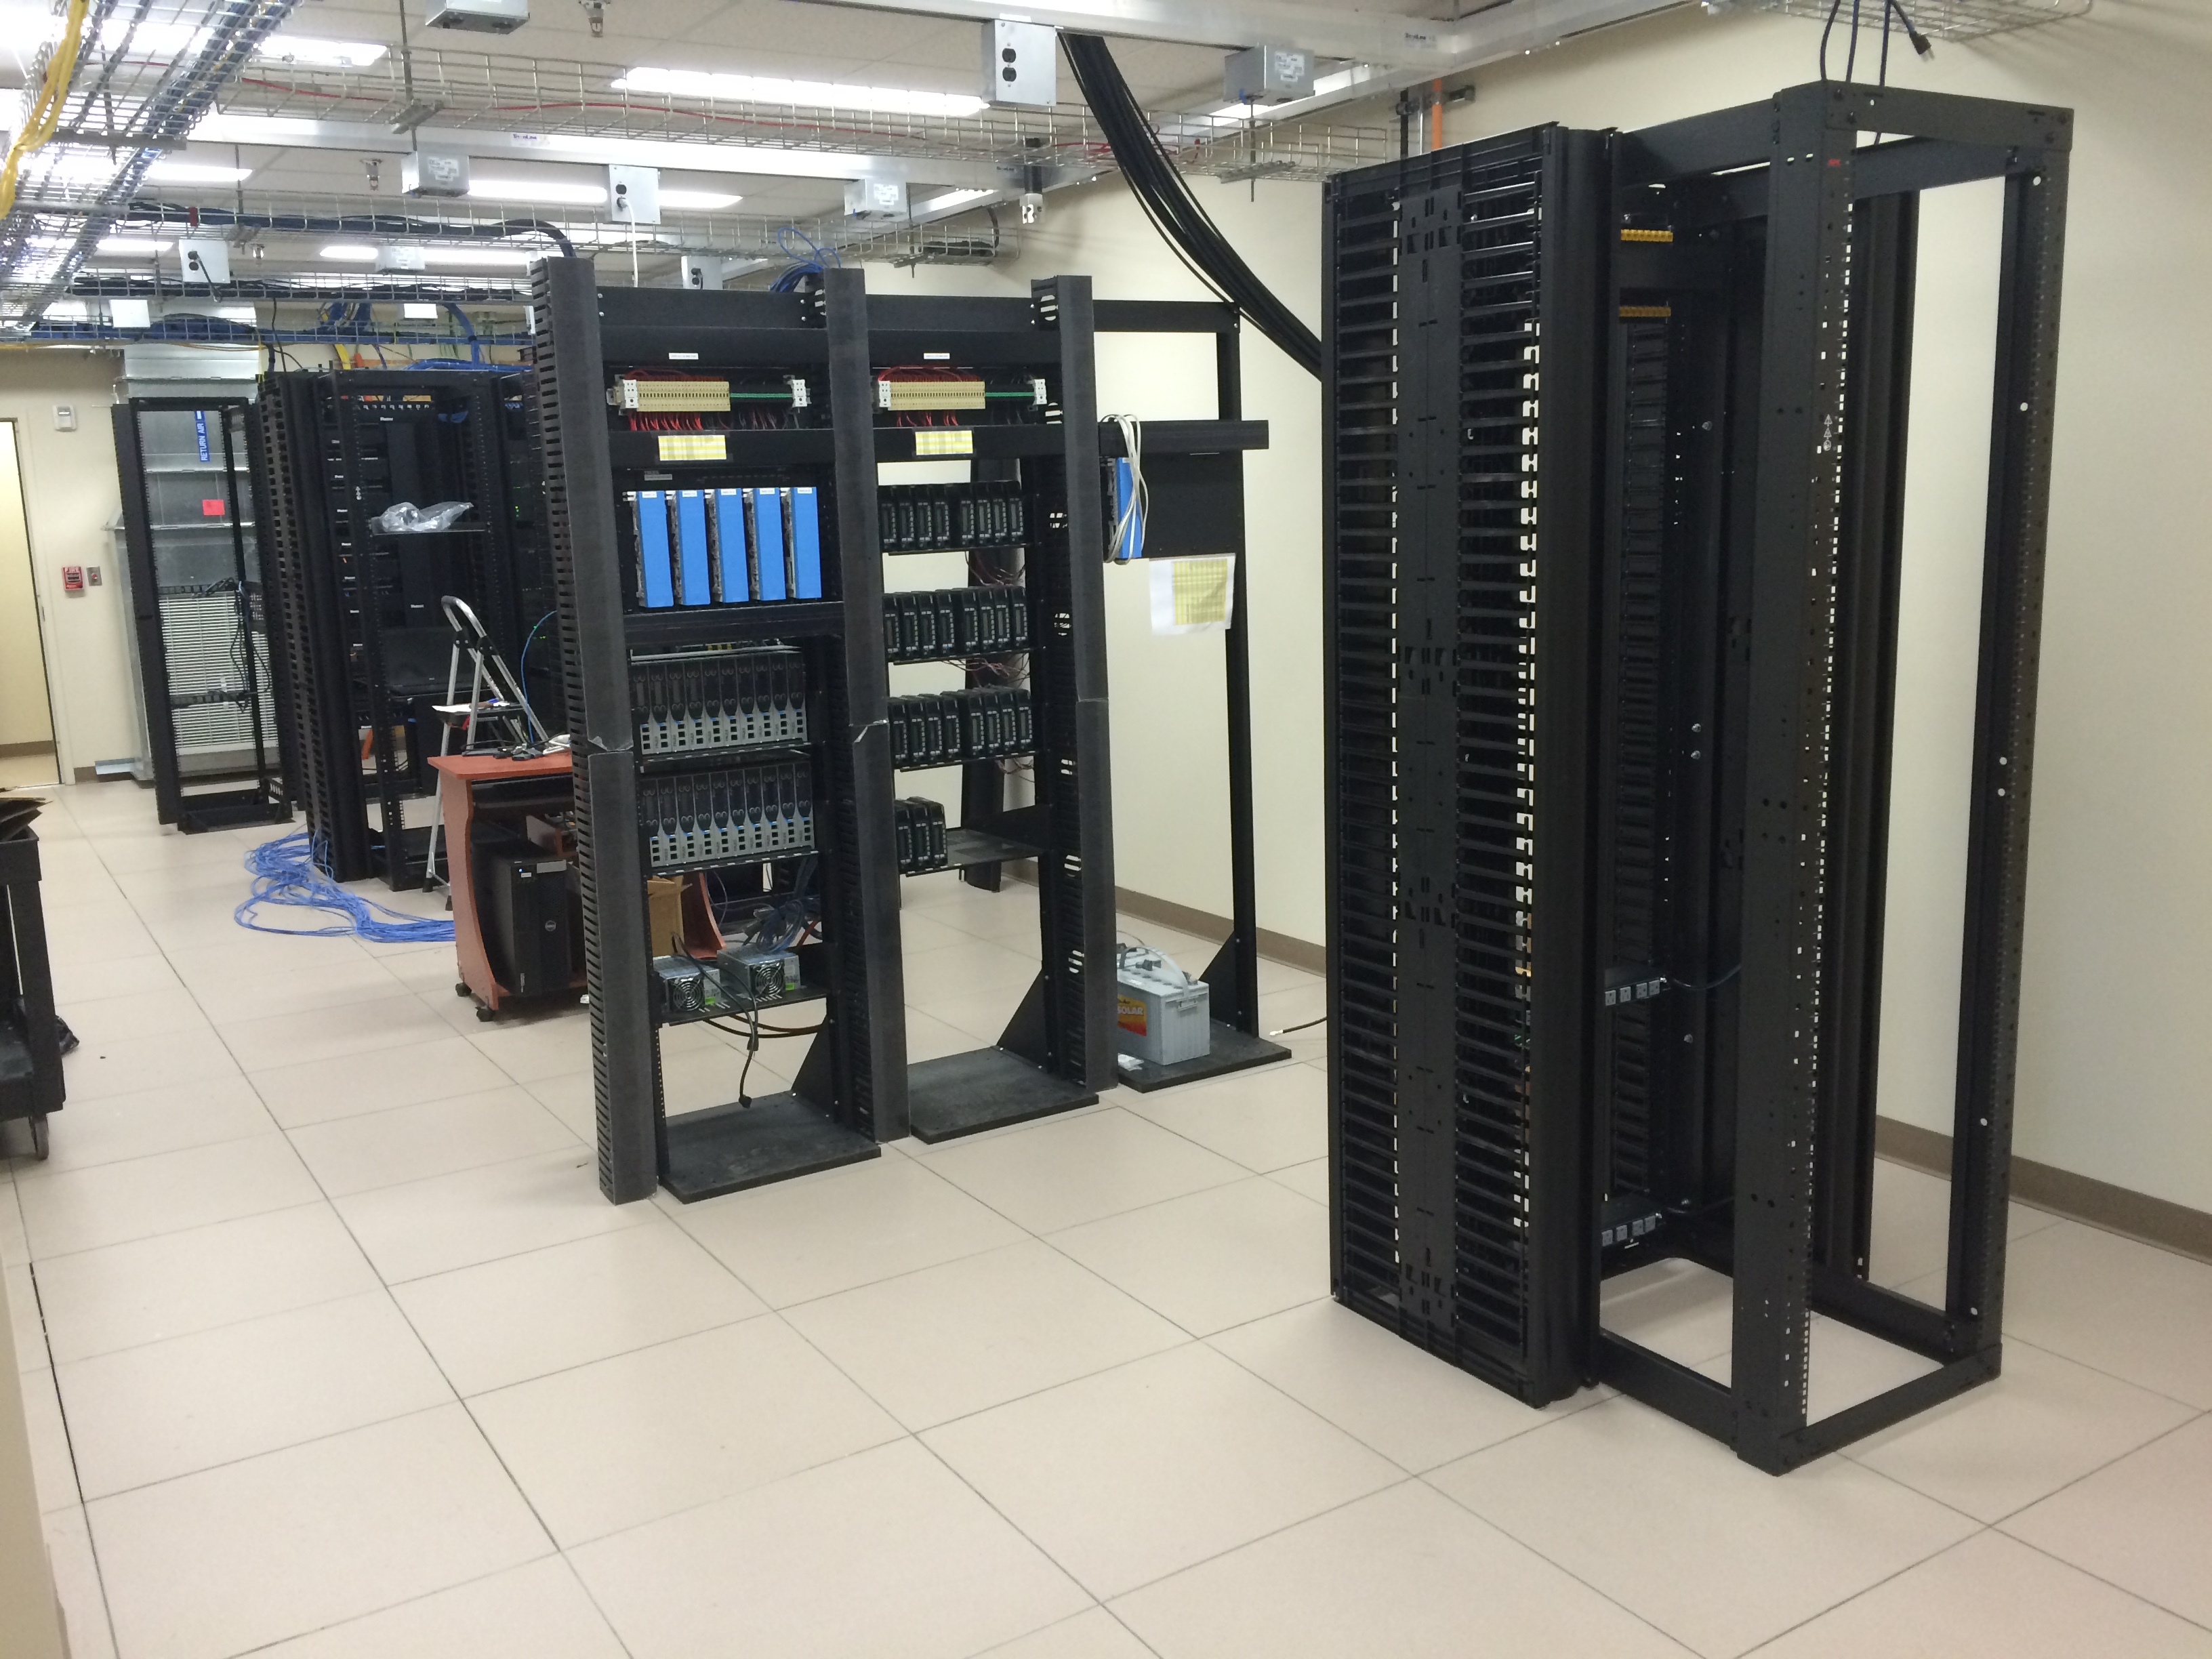 Equipment Being Installed in Server Room